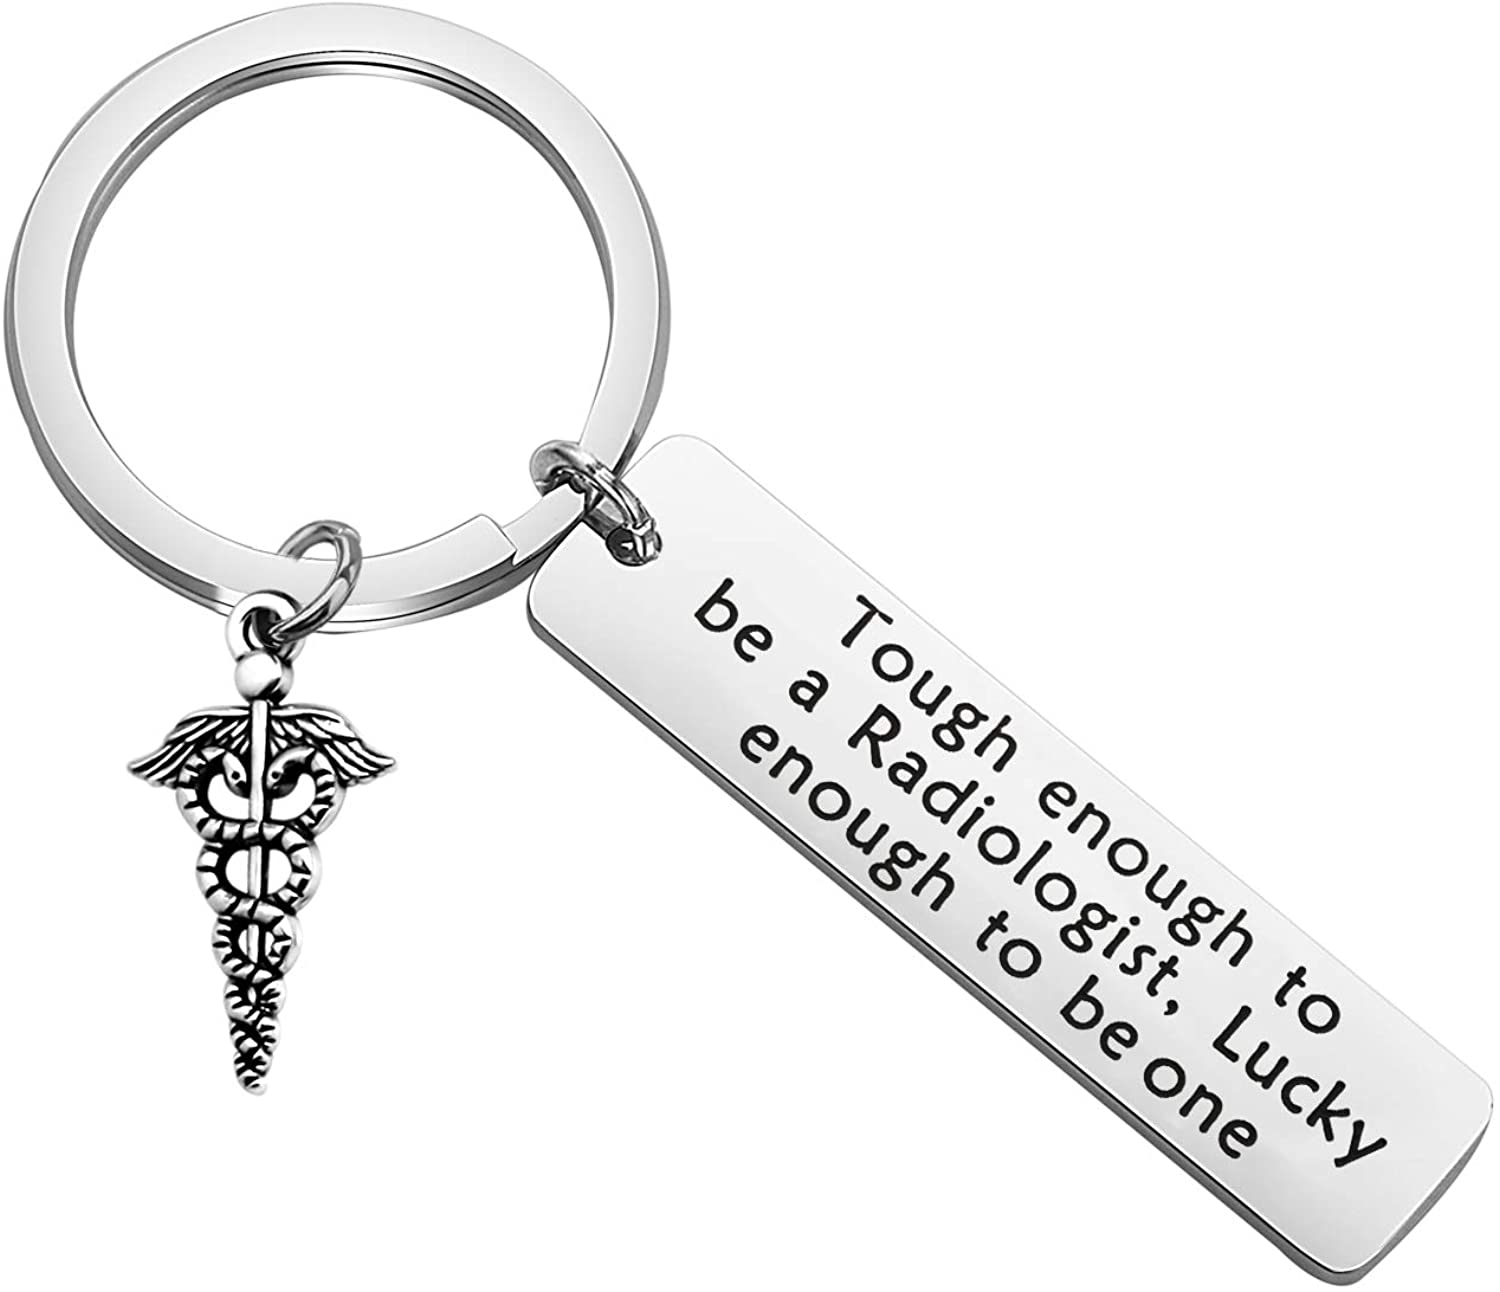 CENWA Radiology Gift Radiology Tech Jewelry Radiology Technician Gift Tough Enough to Be a Radiologist Lucky Enough to Be One Keychain